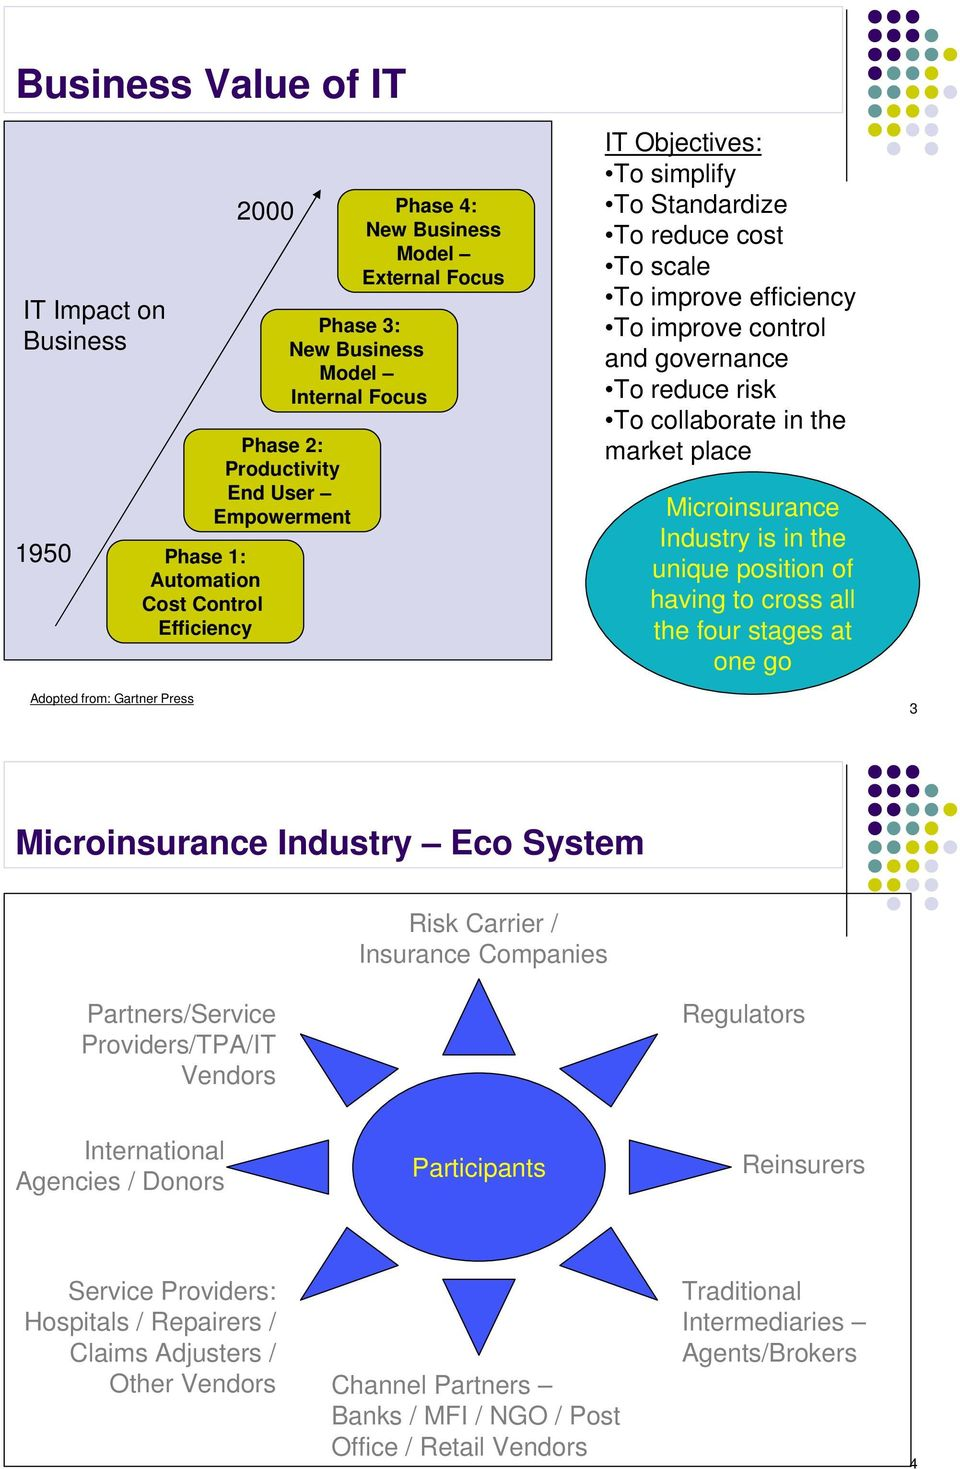 place Microinsurance Industry is in the unique position of having to cross all the four stages at one go Adopted from: Gartner Press 3 Microinsurance Industry Eco System Risk Carrier / Insurance